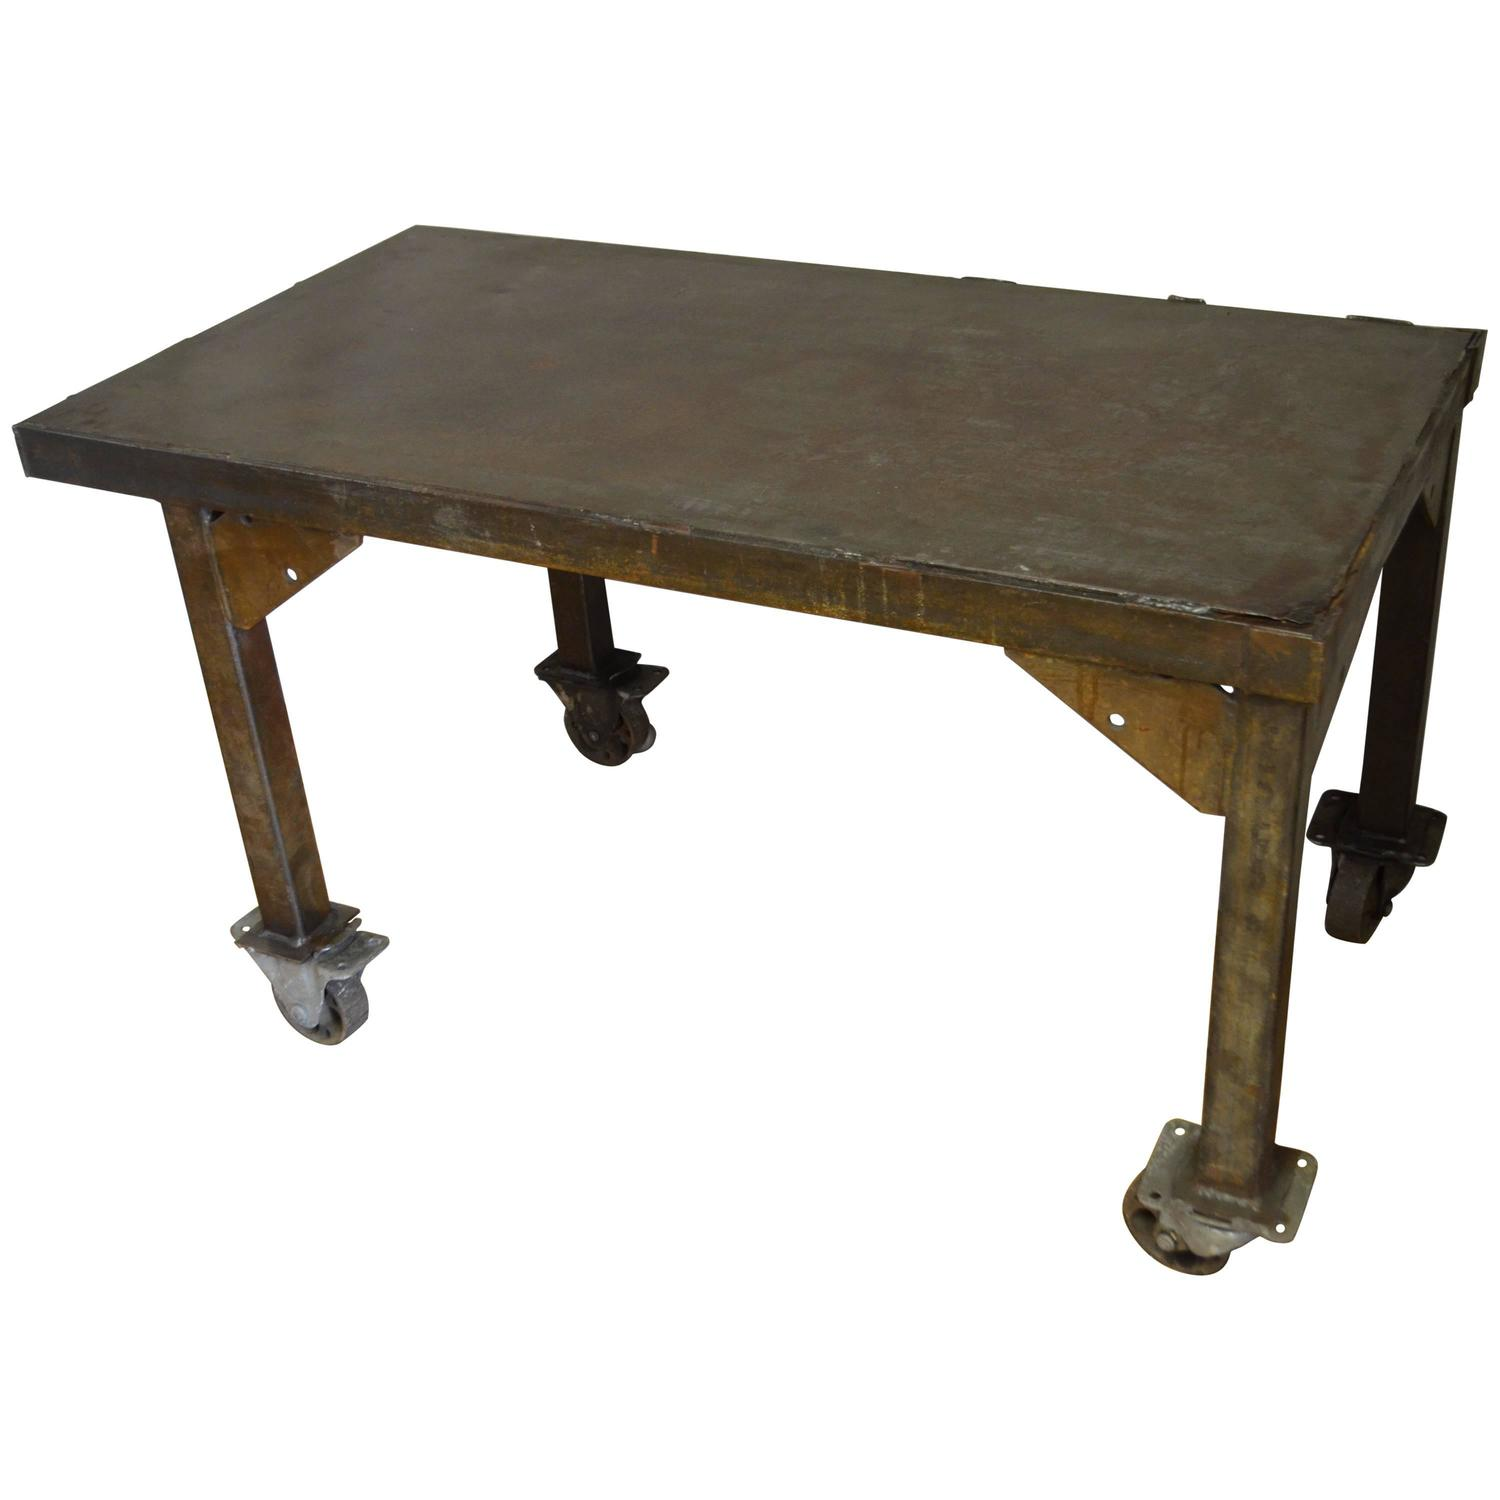 Industrial Tv Stand And Coffee Table: Steel Rolling Coffee Table Work Table Flat Screen TV Stand